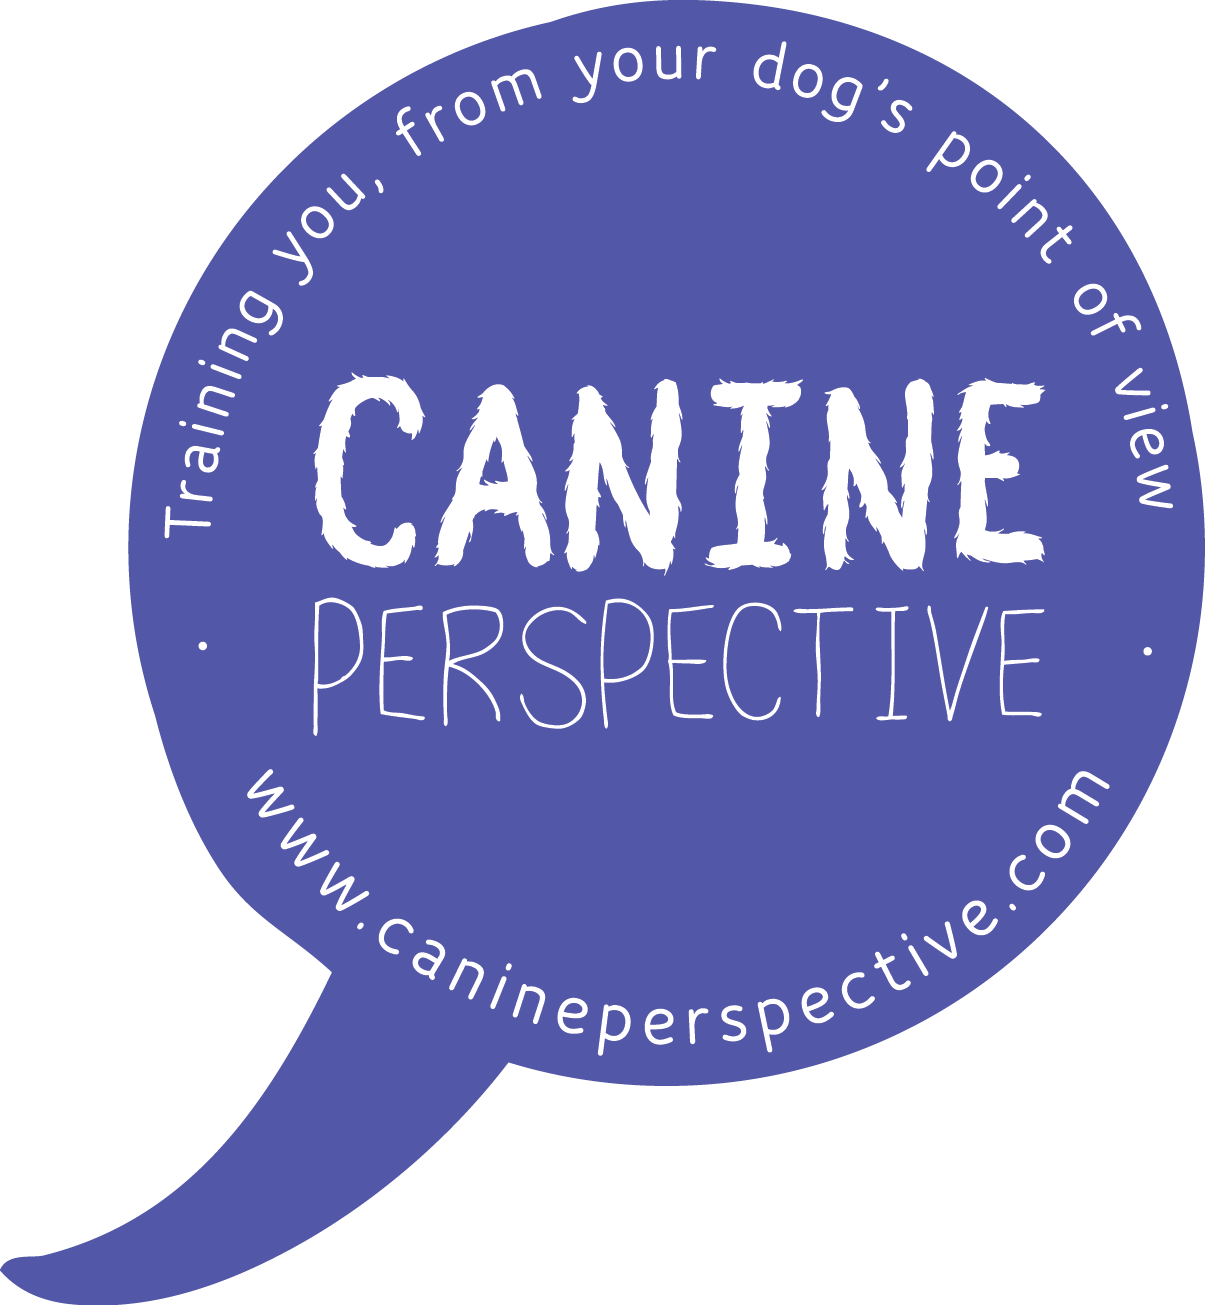 Canine Perspective logo